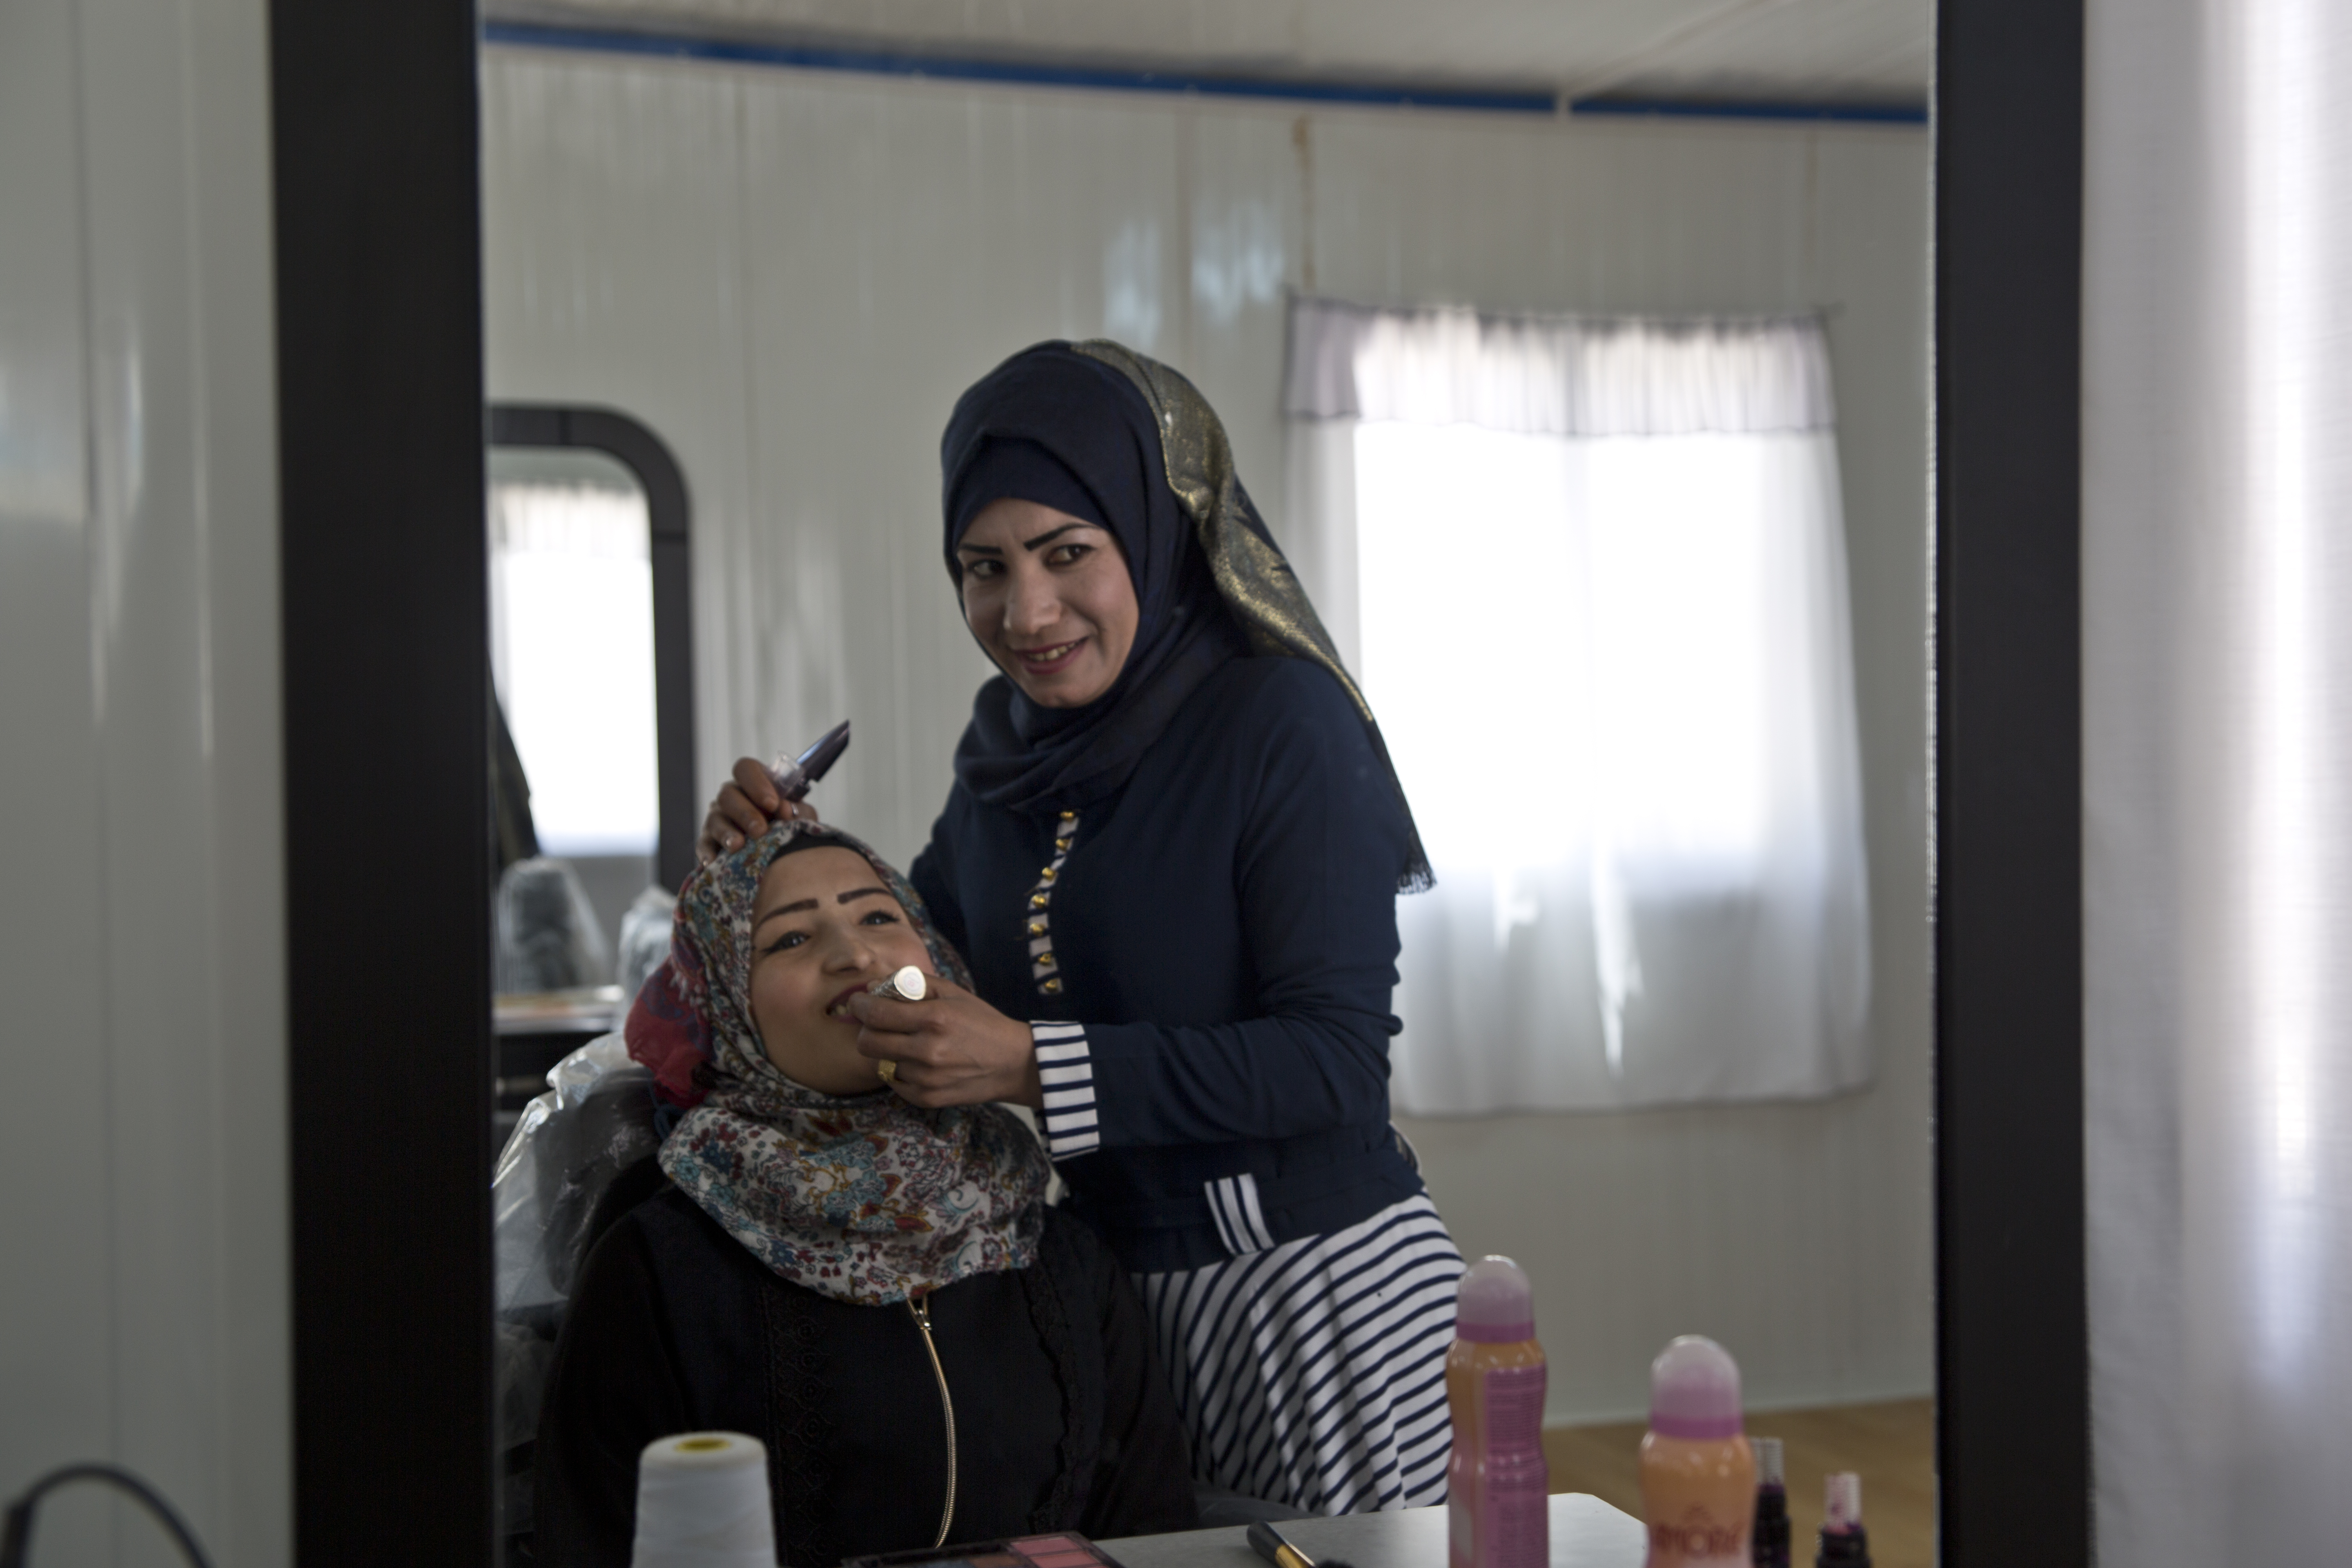 Intesar Hassan supports her family by working as a beautician within the cash-for-work program within the Azraq UN Women Oasis for 'Women and Girls.' Photo source: UN Women/Lauren Rooney